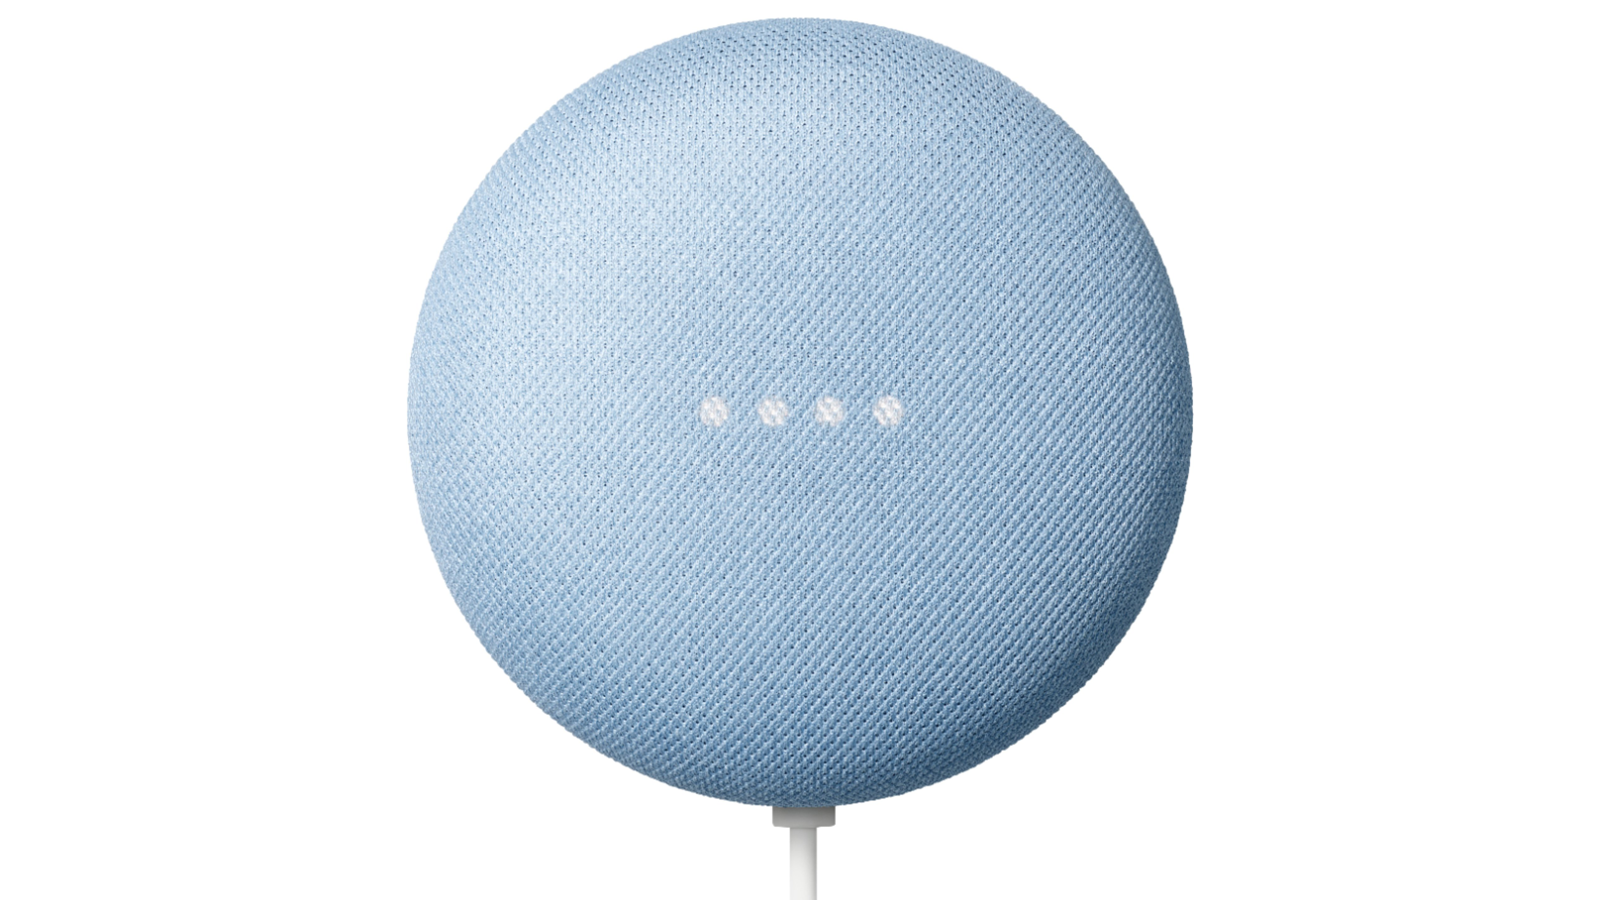 Google Nest Mini smart speaker in sky blue